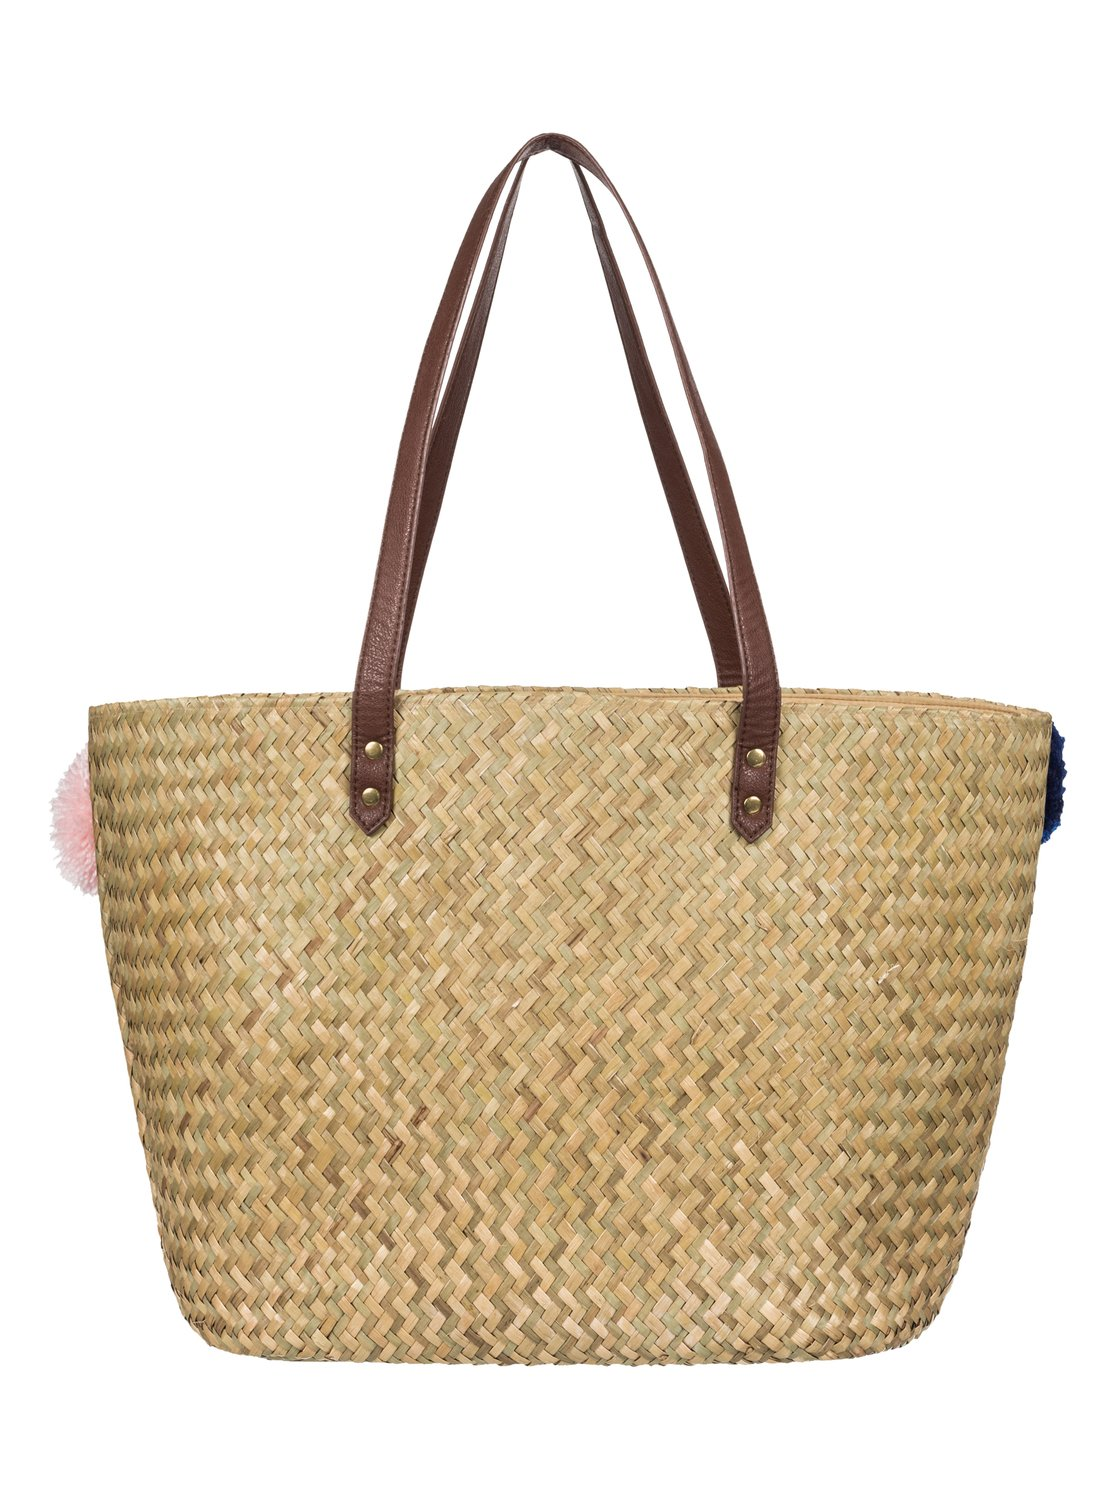 Find great deals on eBay for beach straw bag. Shop with confidence.